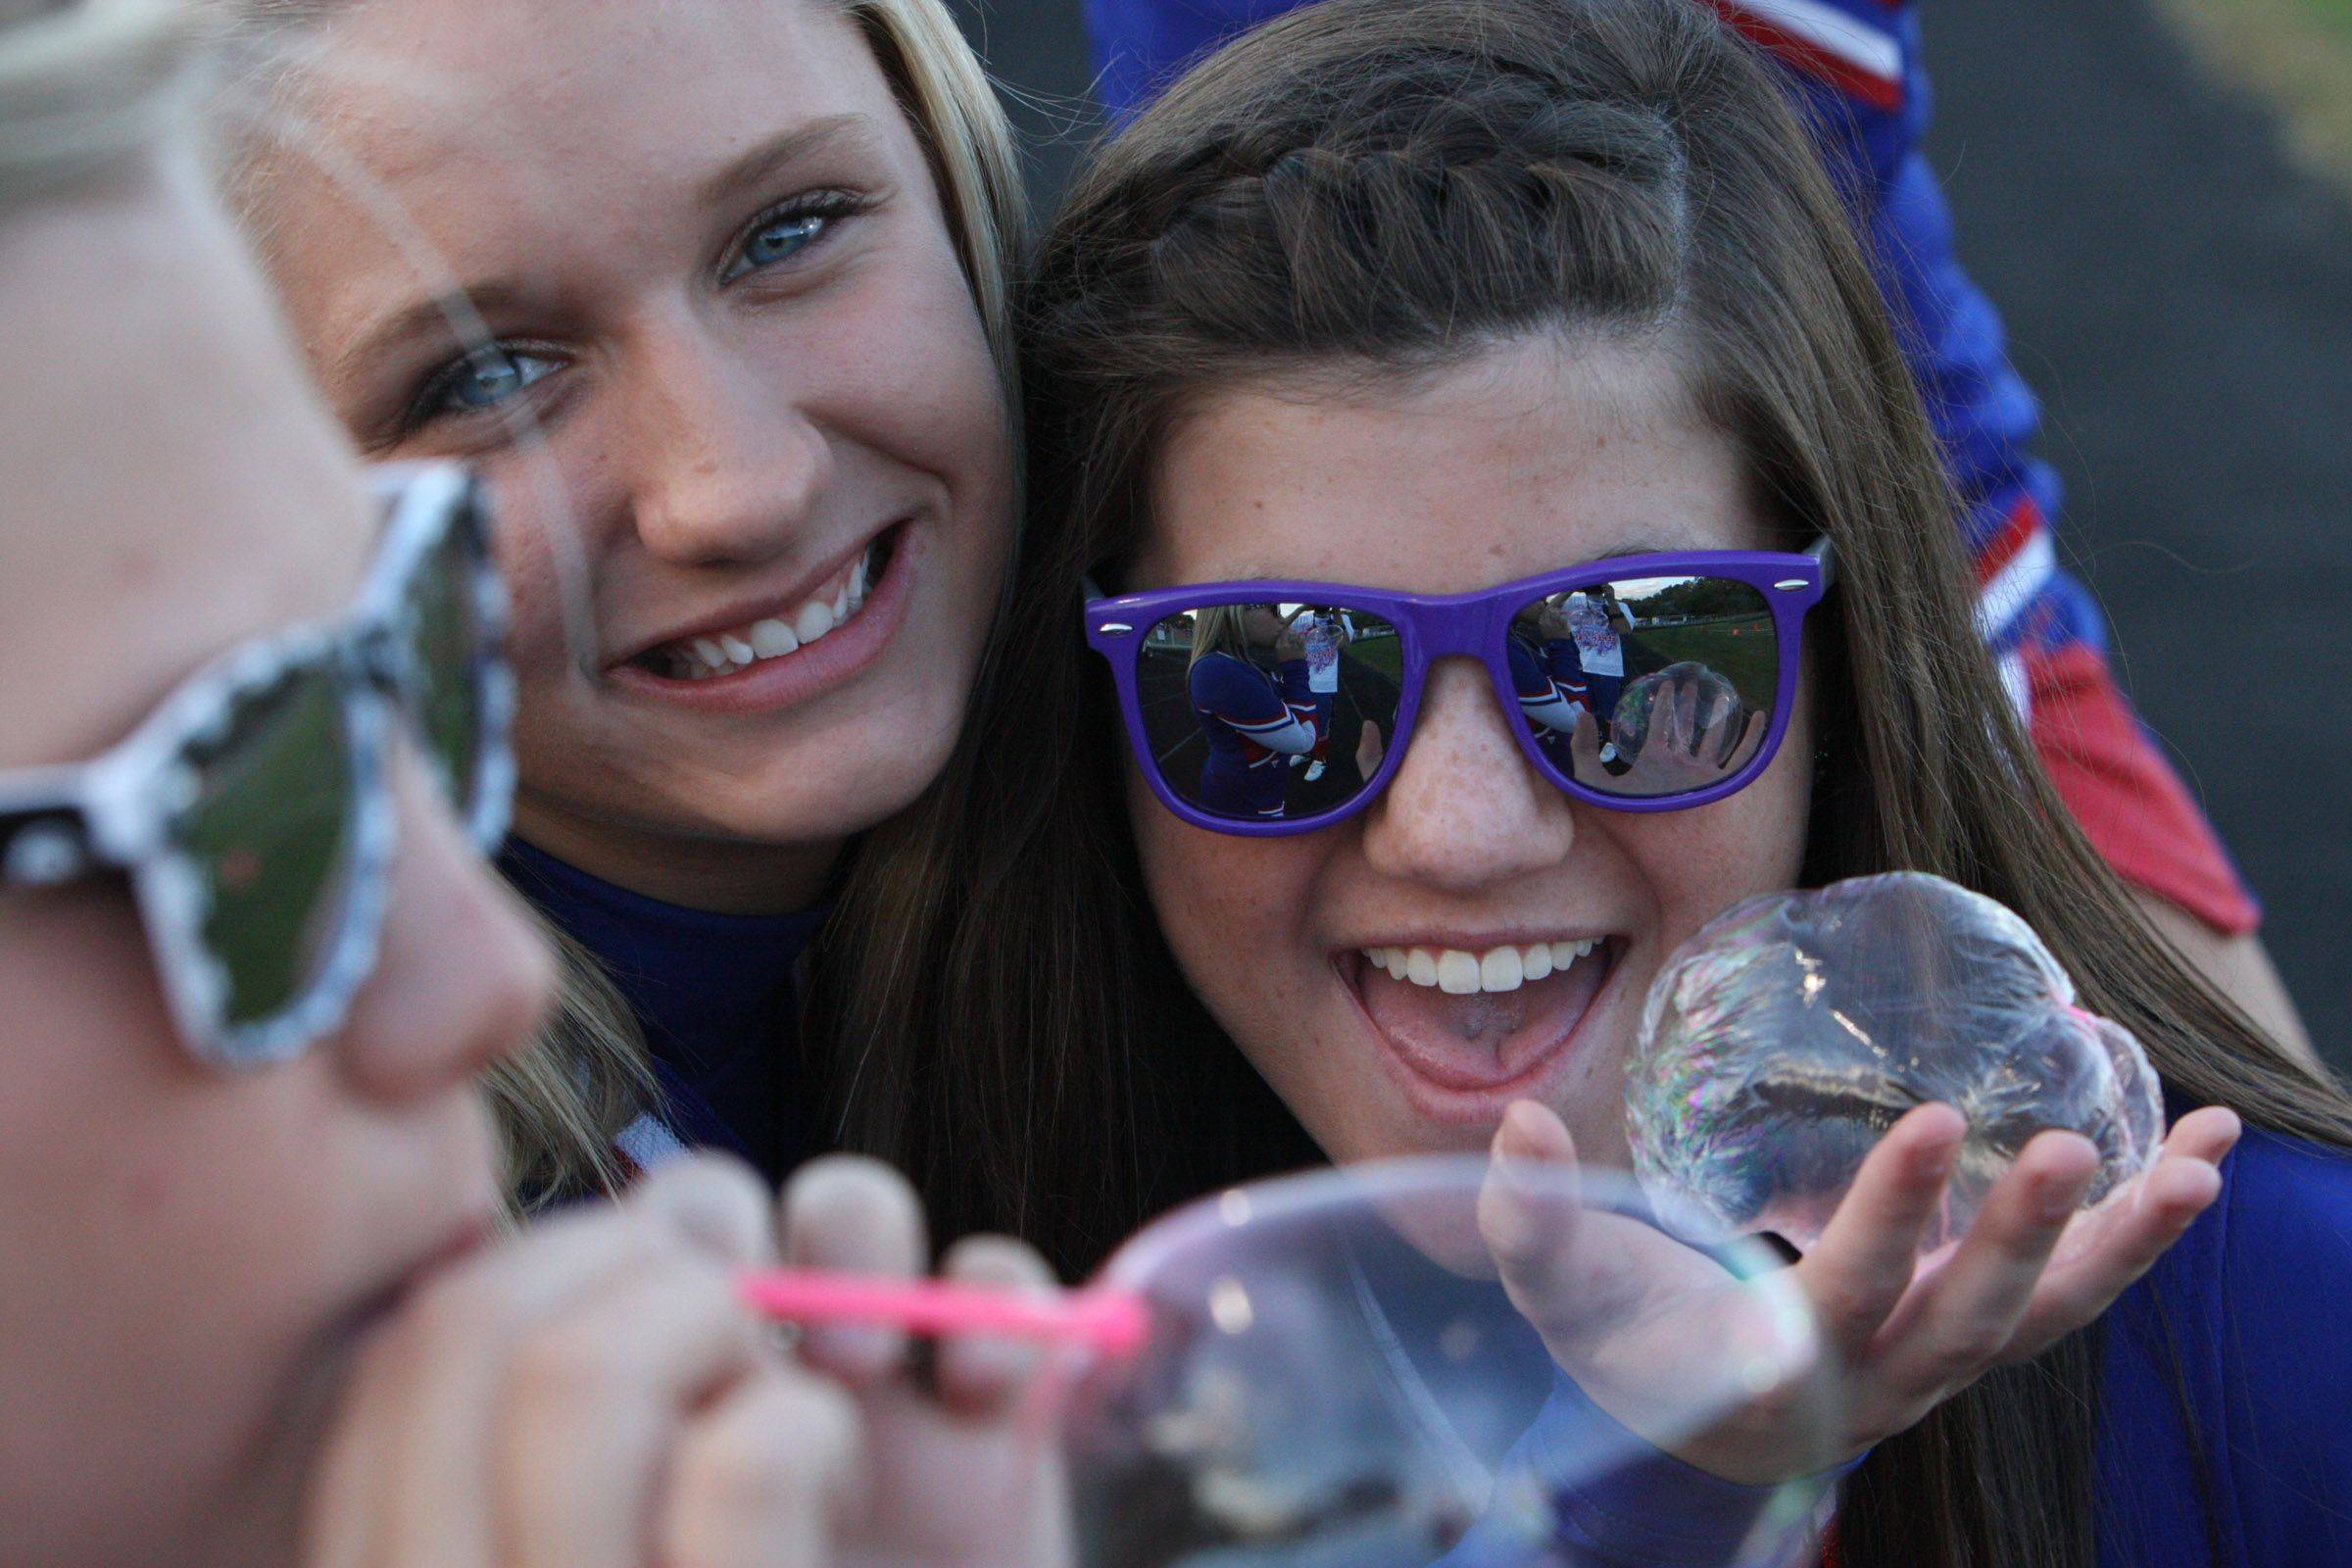 This photo was taken a couple of weeks ago at the Dundee Crown Homecoming game. I was looking to take a photo of my friend blowing bubbles when two other girls wanted to get into the picture.